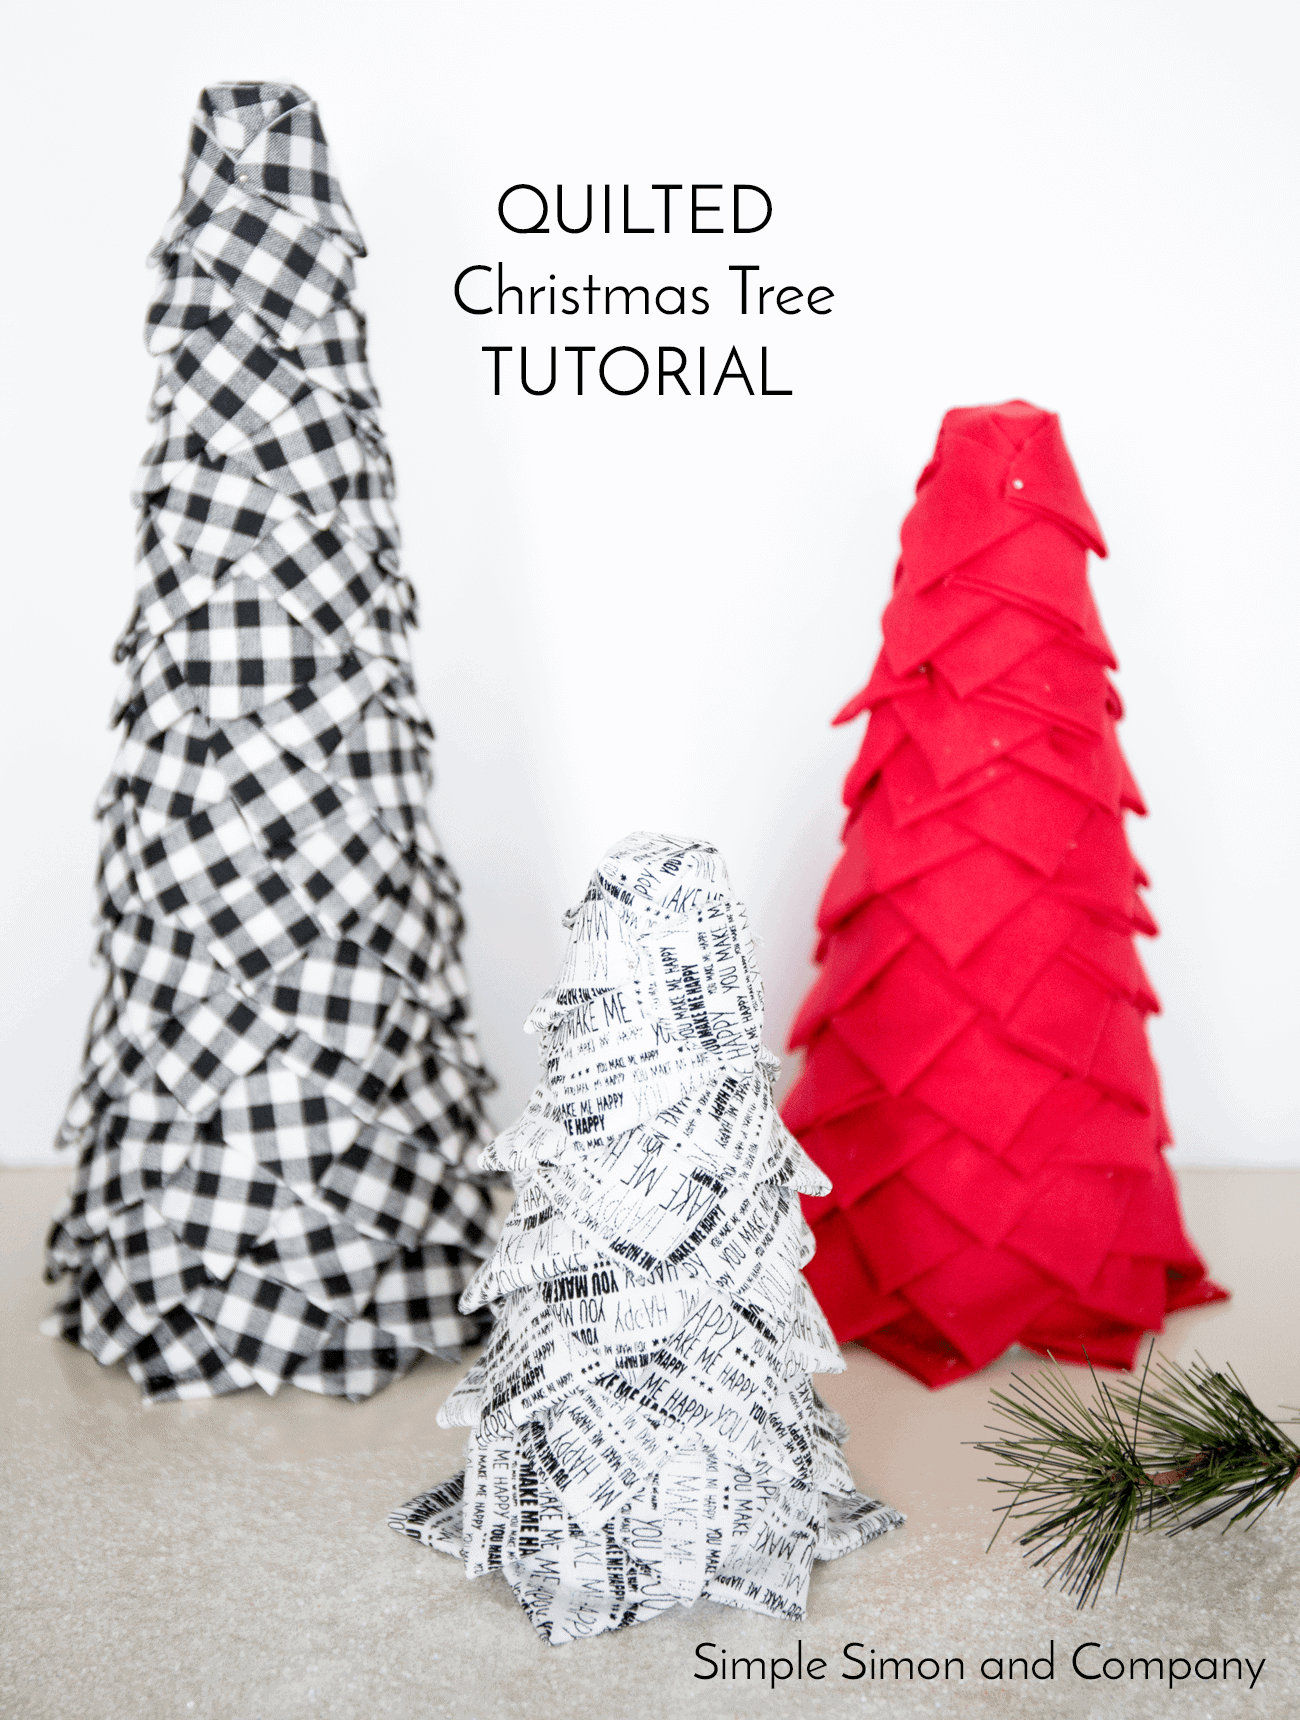 No-Sew Quilted Christmas Trees